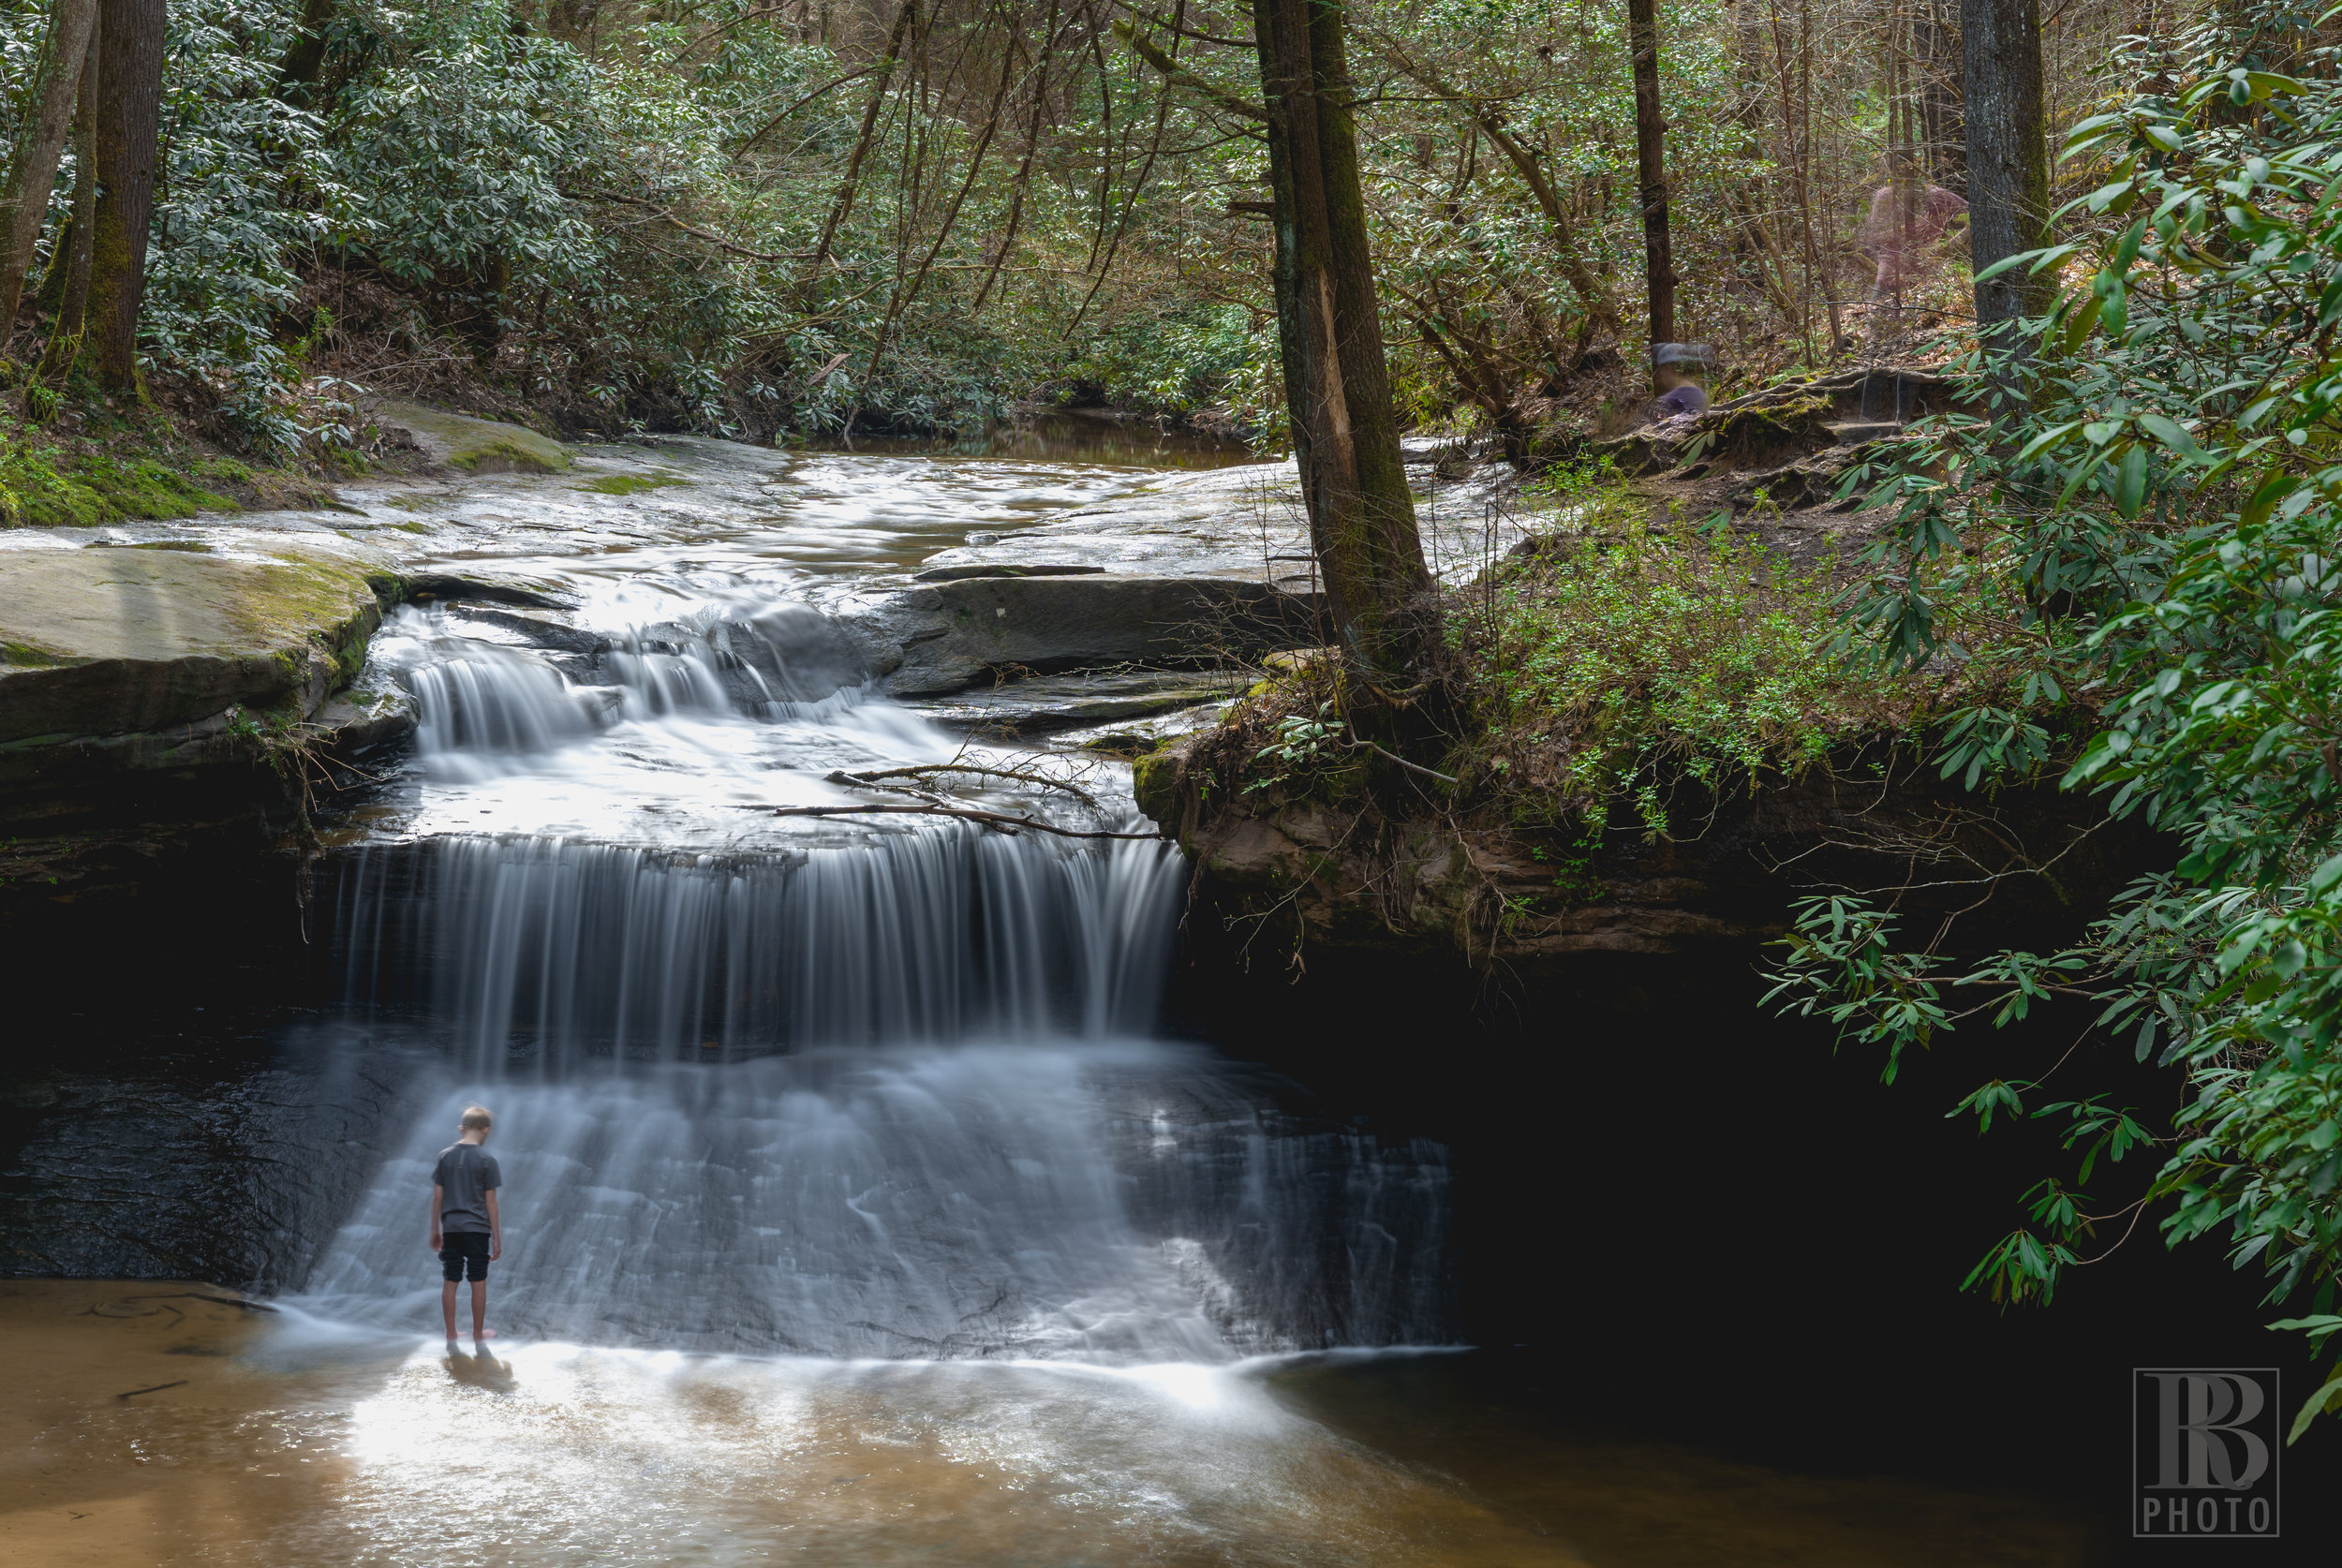 In order to smooth out the waterfalls, I use a neutral density filter and a long exposure… 23 seconds in this case. The added benefit of doing that is that as people move in or out of the frame they generally don't show up in the final image, or if they do it's faint enough that they're super easy to Photoshop out. This little dude stood stock-still for the entire 23 second exposure and actually turned out to provide a really cool element to the final image.